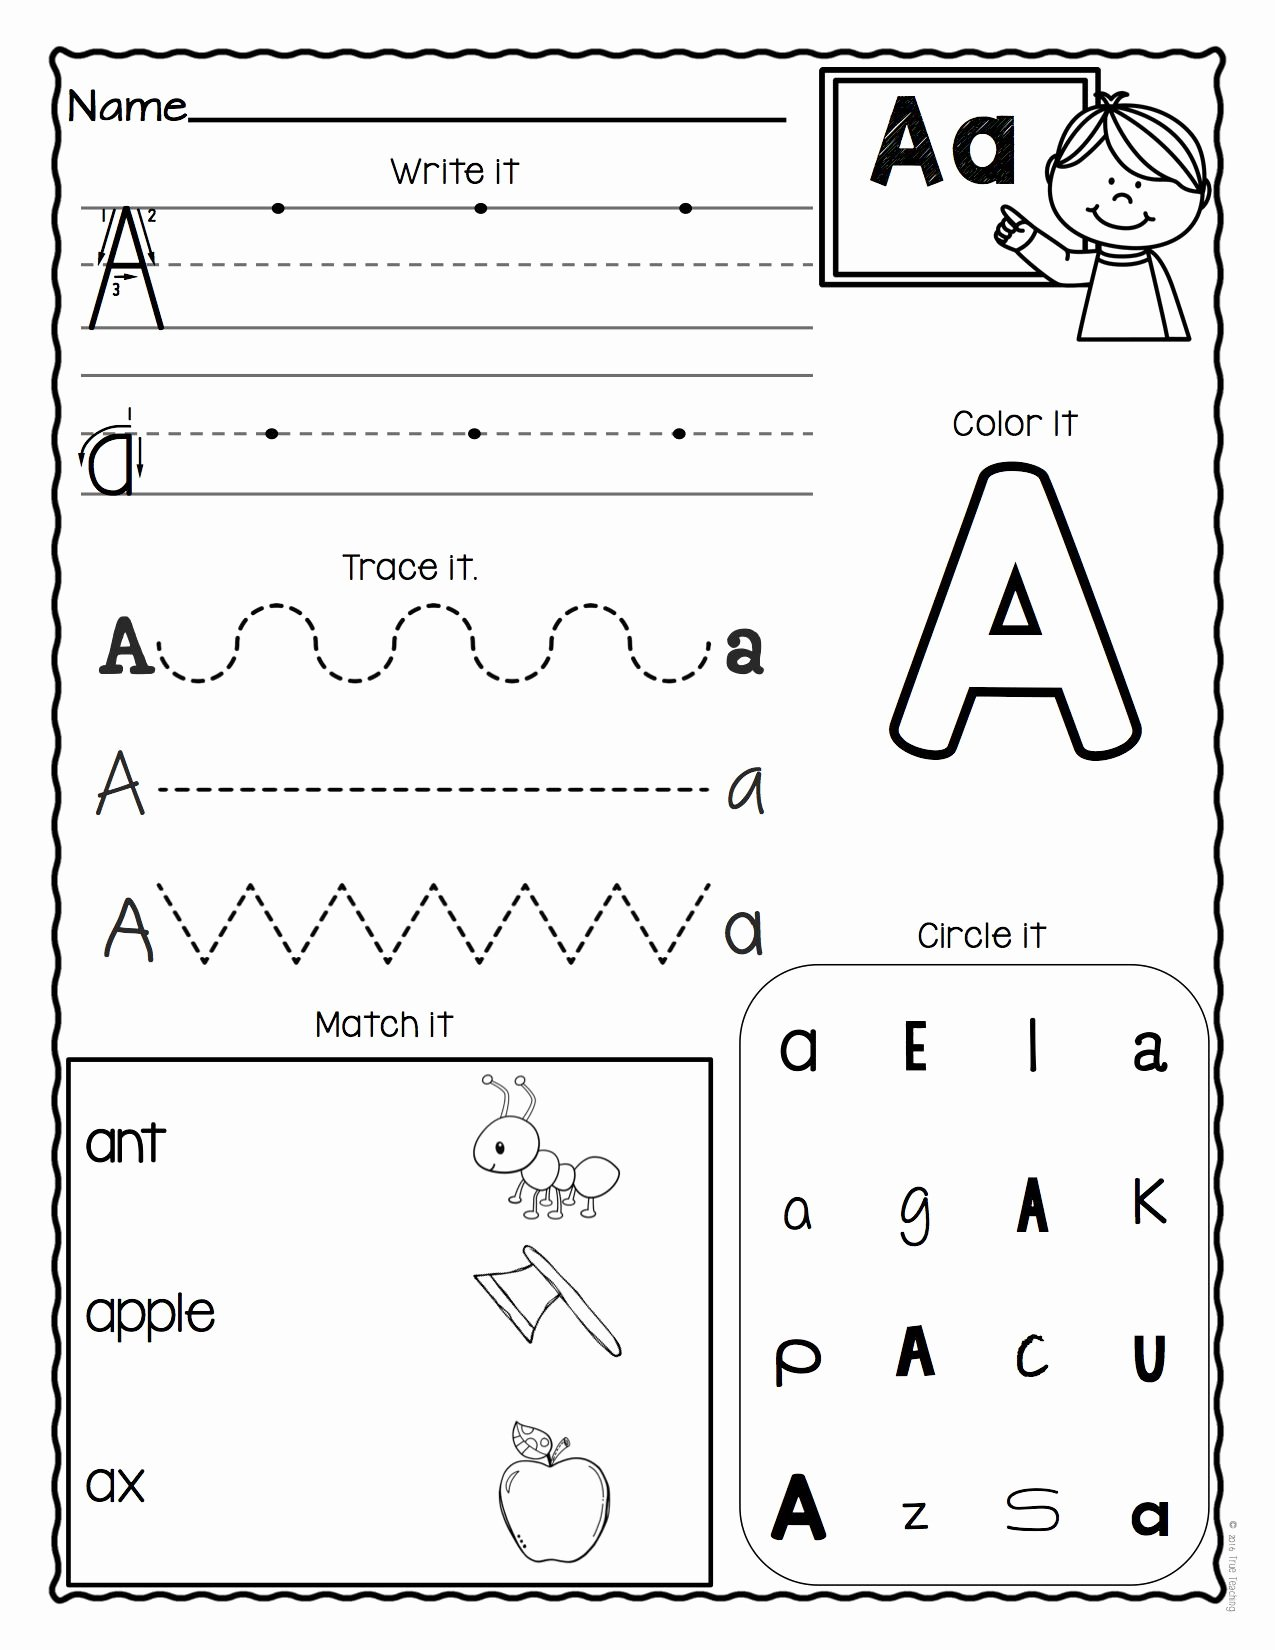 Letter Worksheets for Preschoolers top A Z Letter Worksheets Set 3